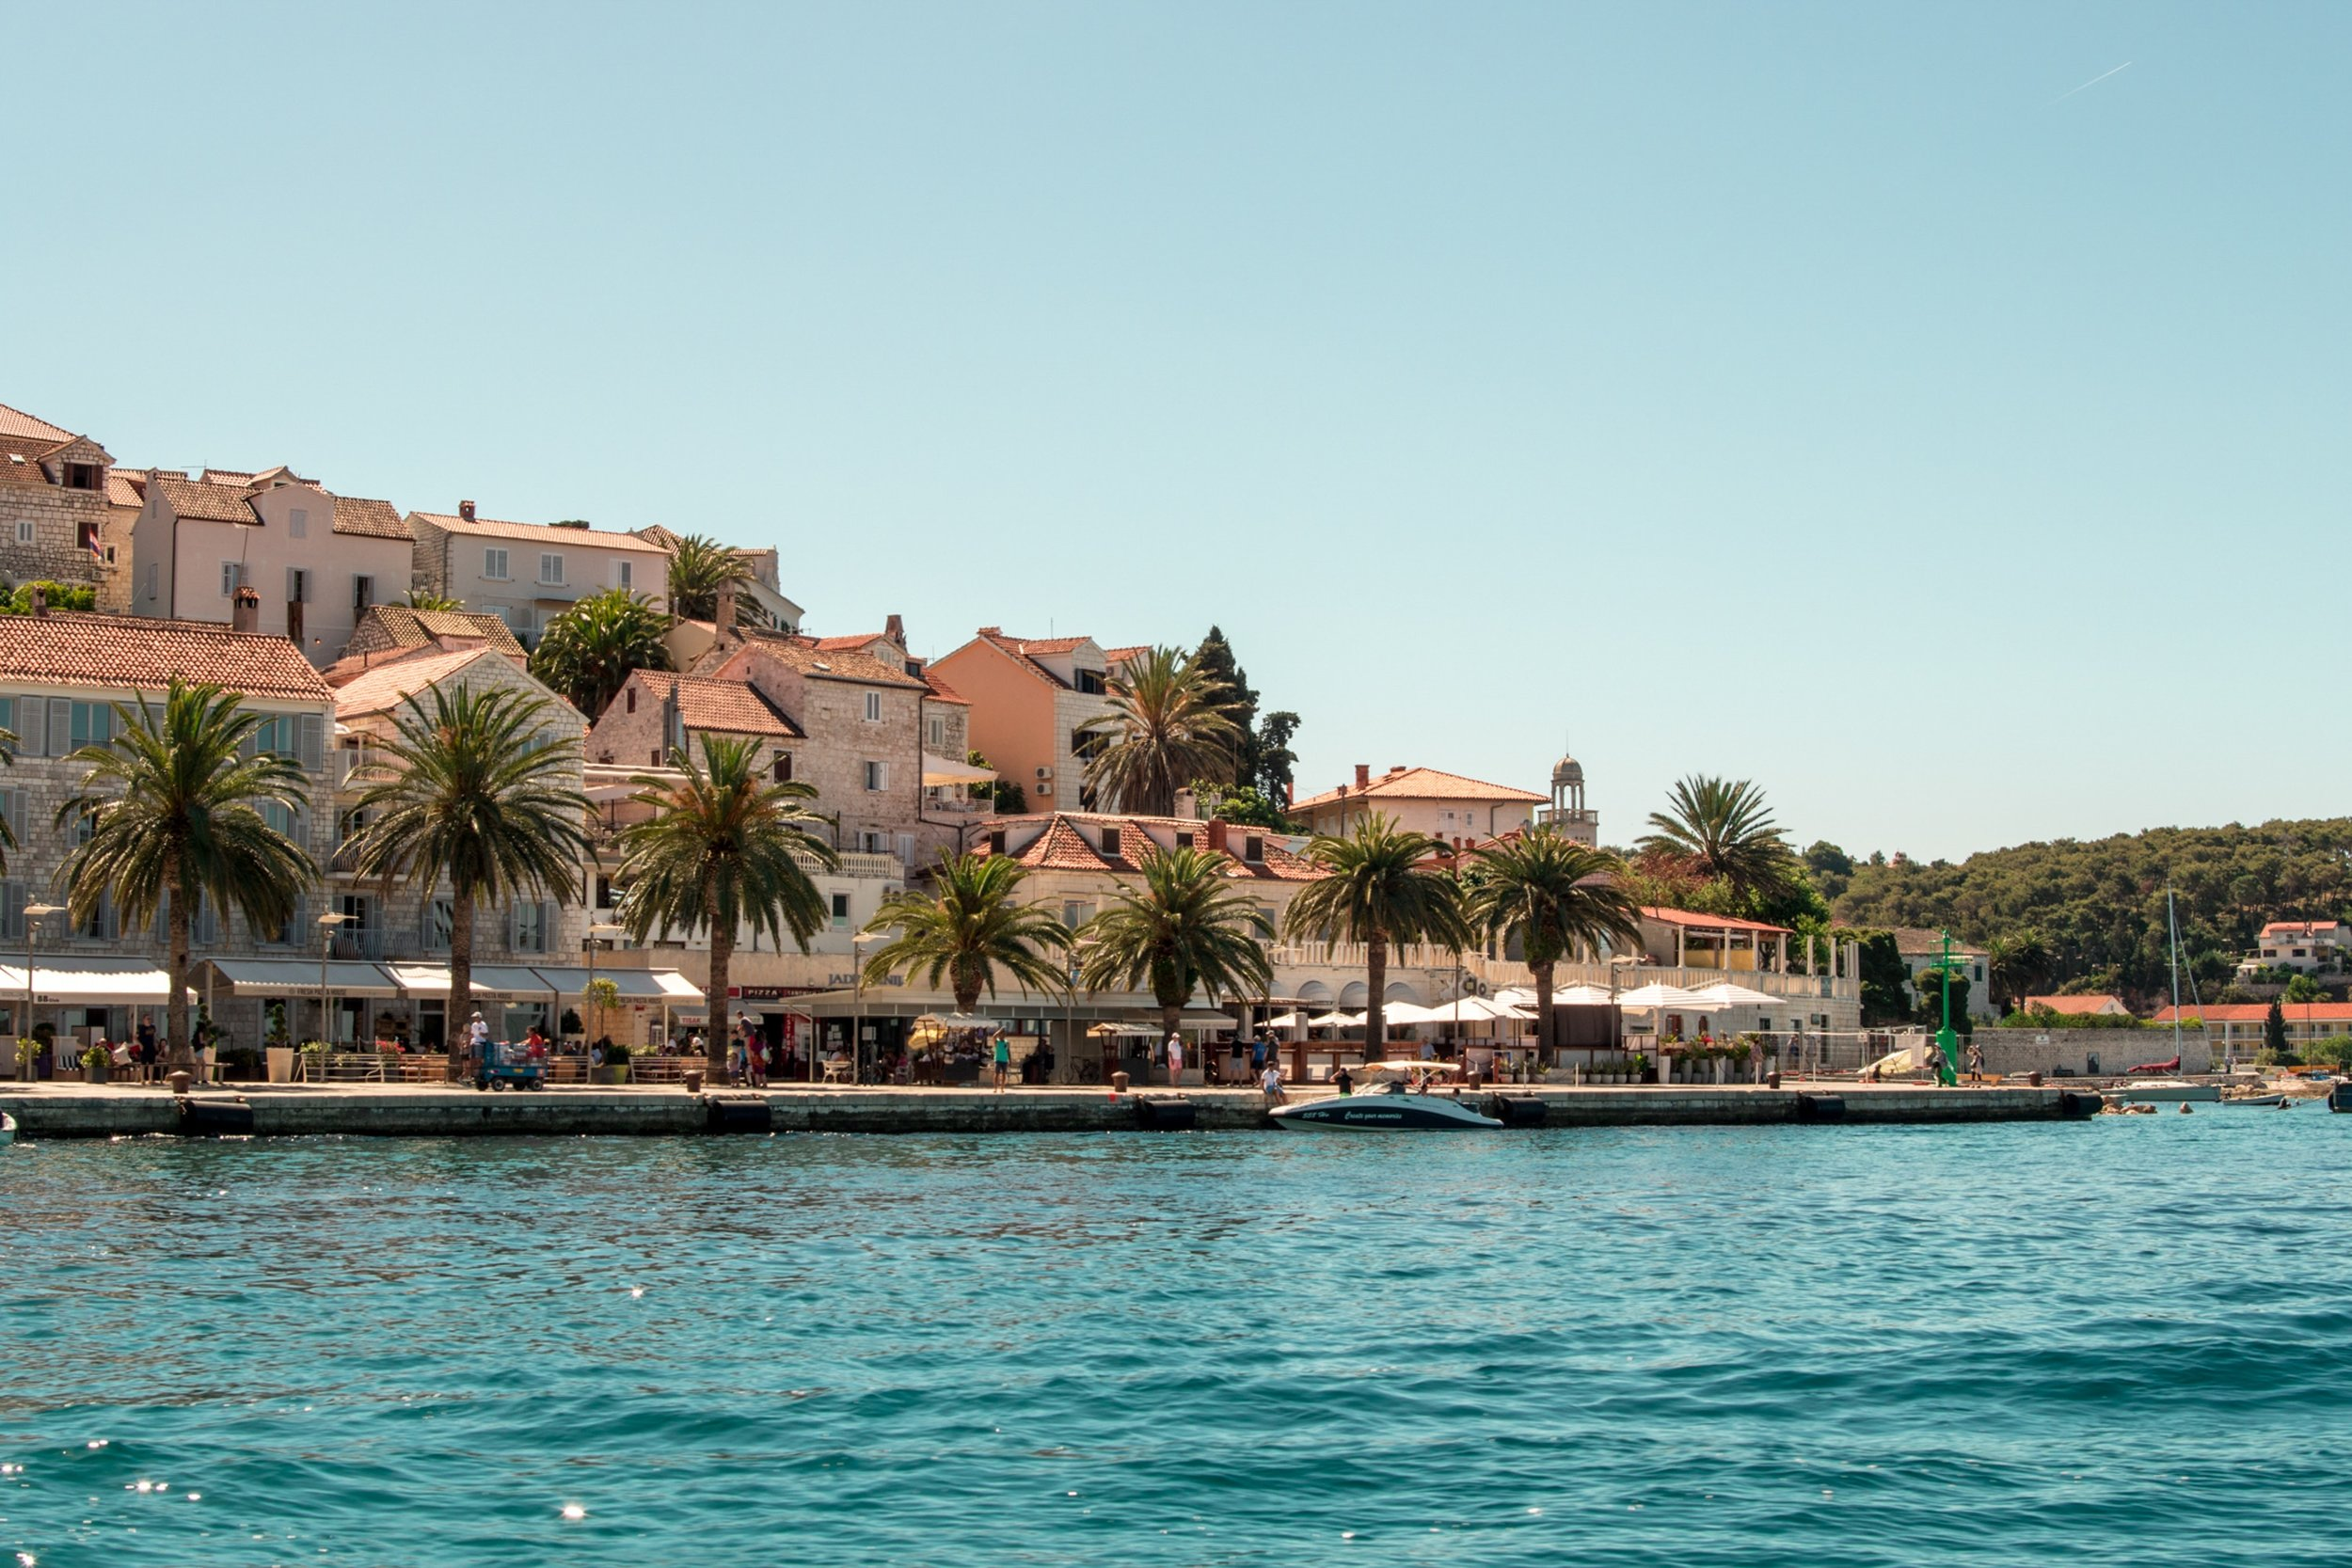 Hvar, Croatia - who wouldn't want to be here in July?